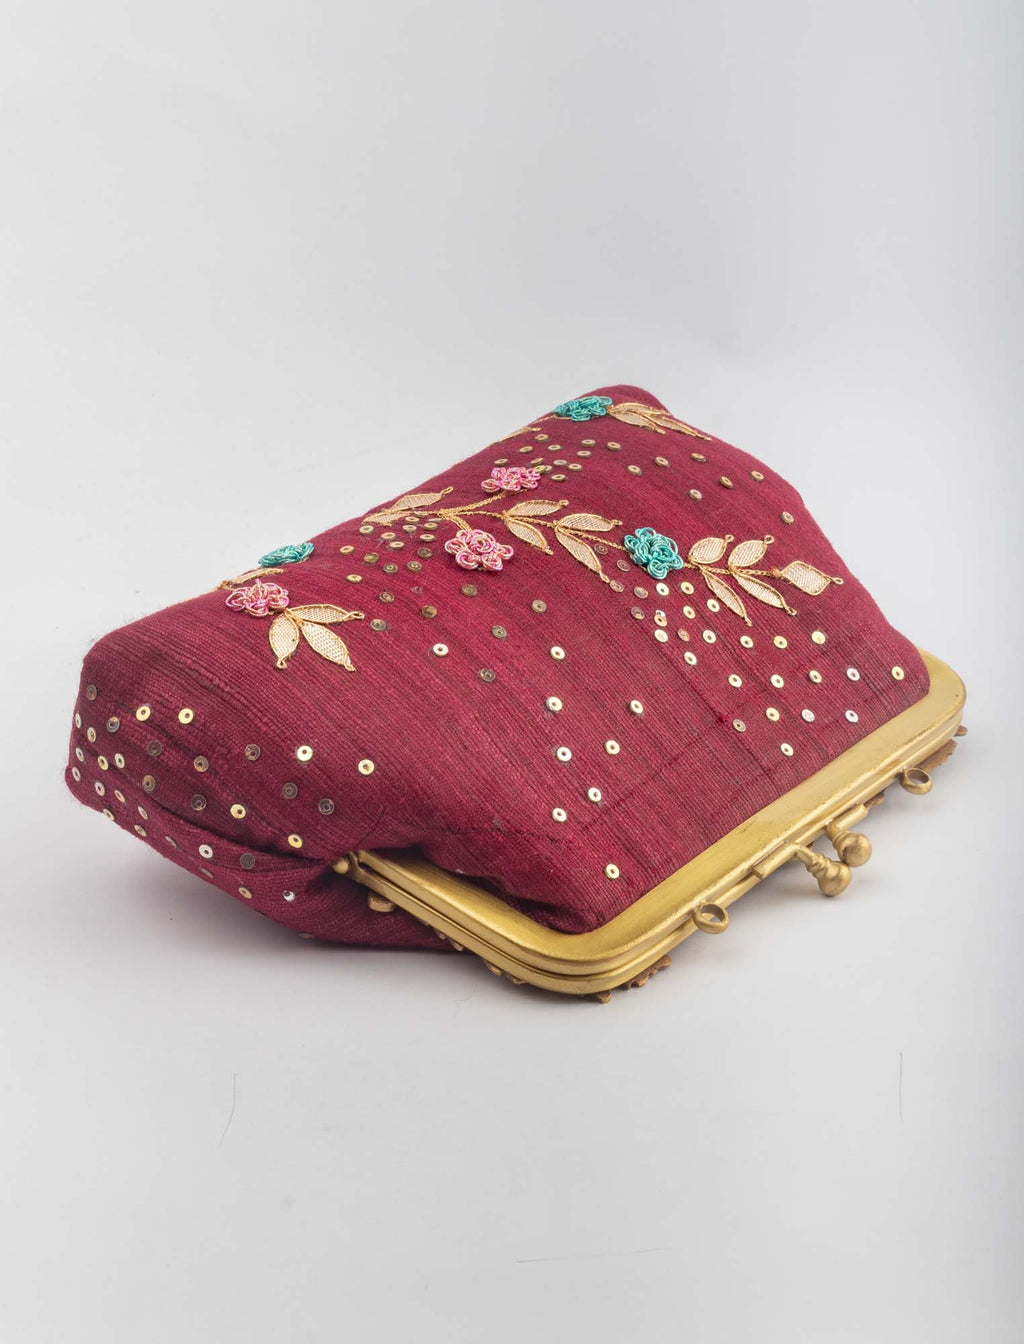 Joomer Khadi Silk Red Clutch - Riviera Closet